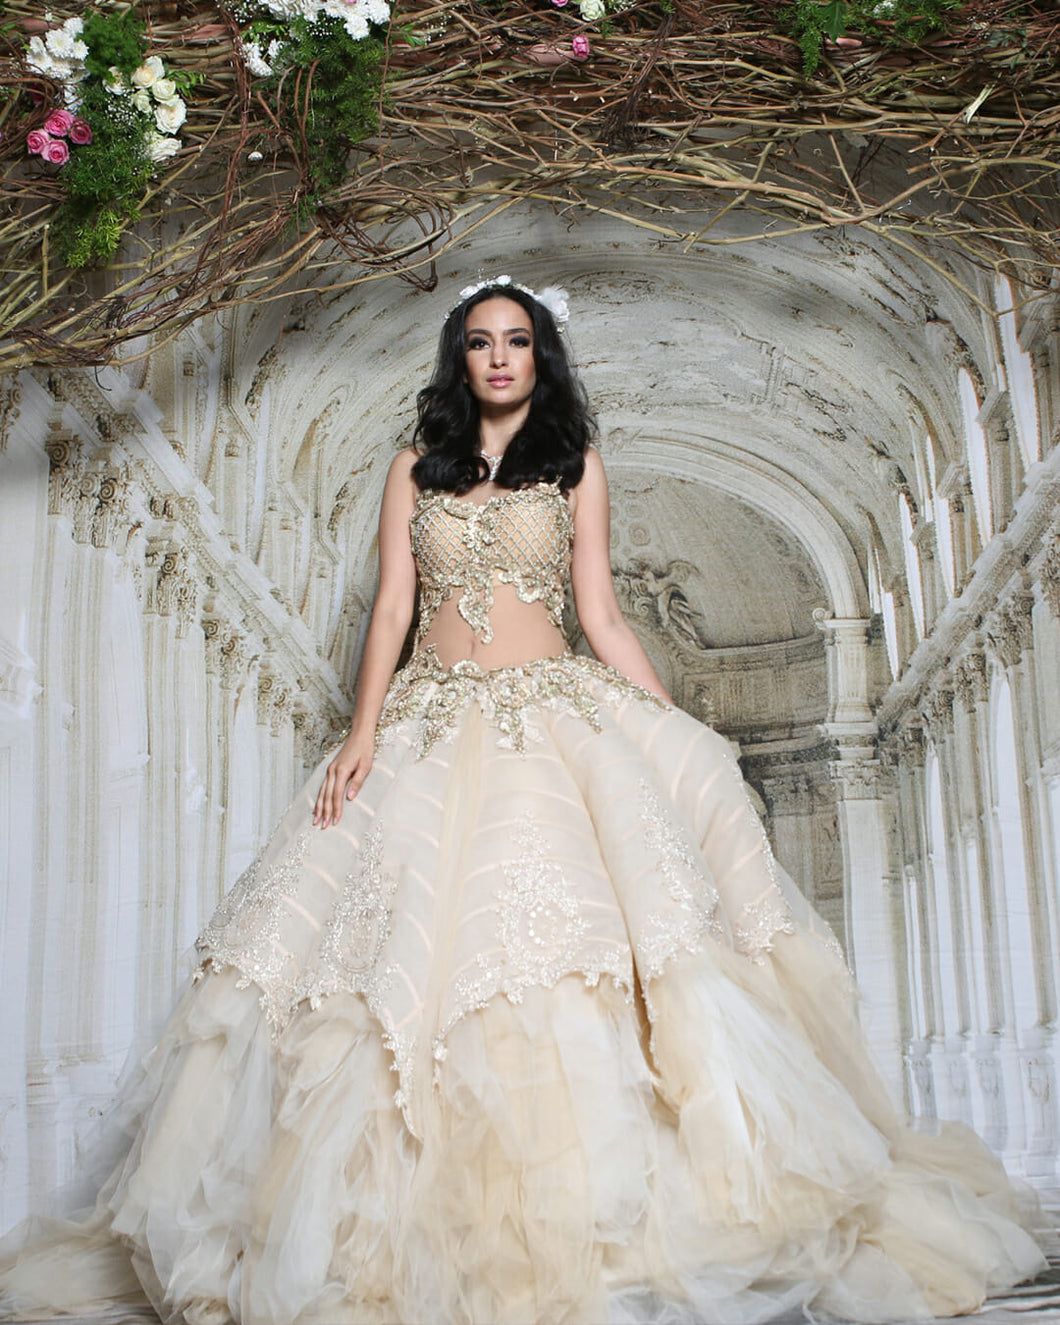 Elegant Embroidered Ballgown - Archana Kochhar India